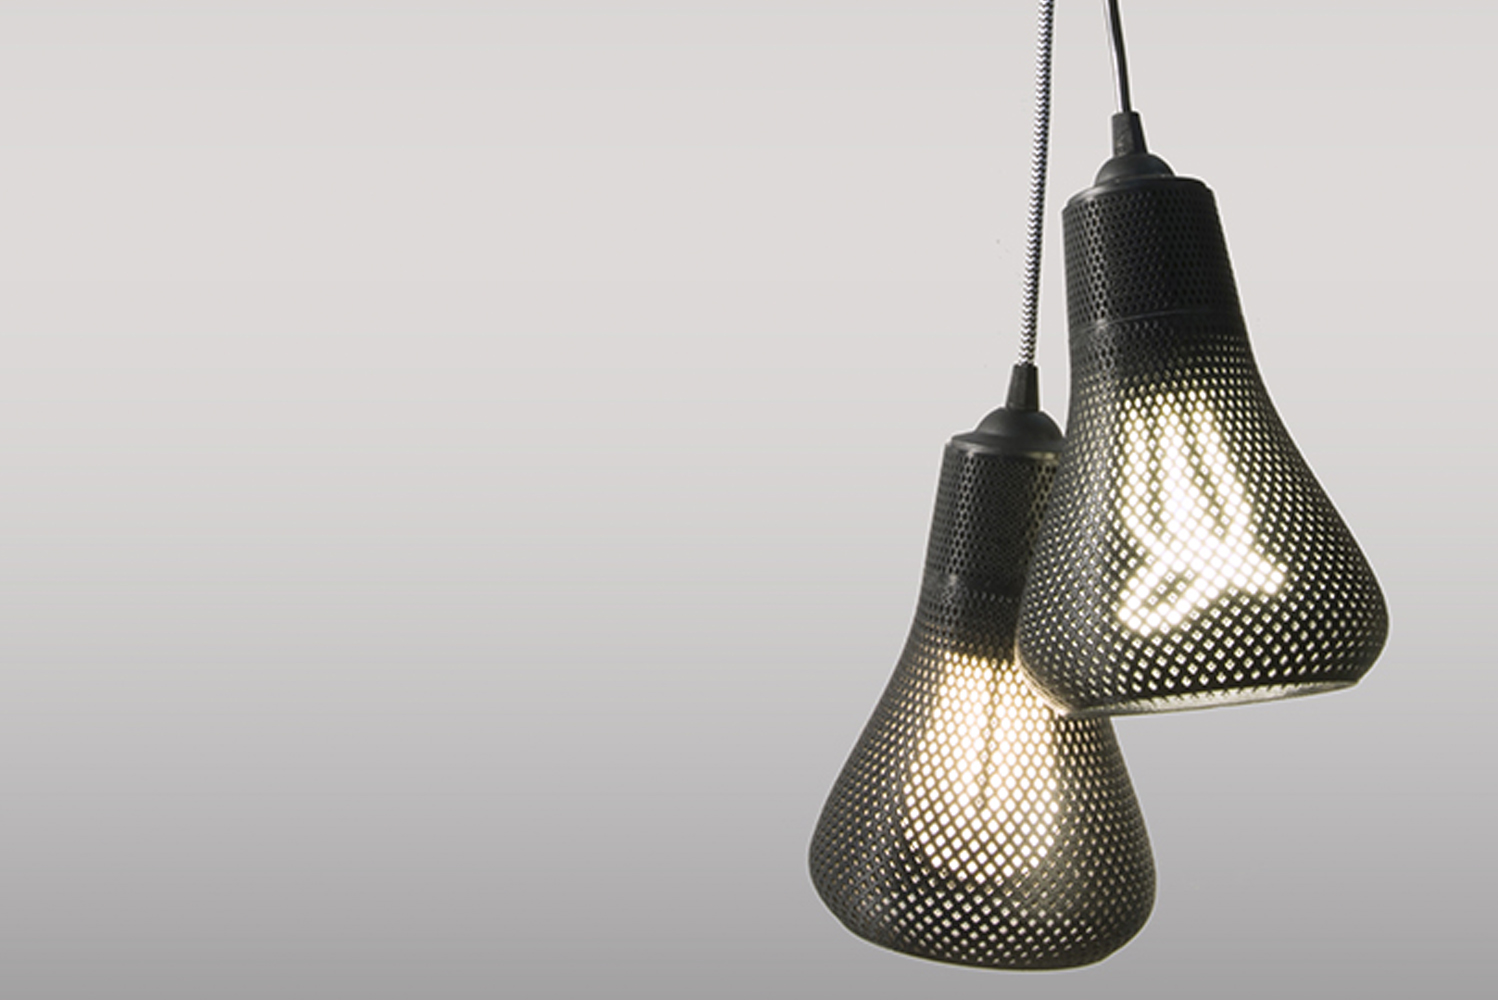 Plumen and Formaliz3d launched Kayan, a brand new 3D-printed pendant lights.